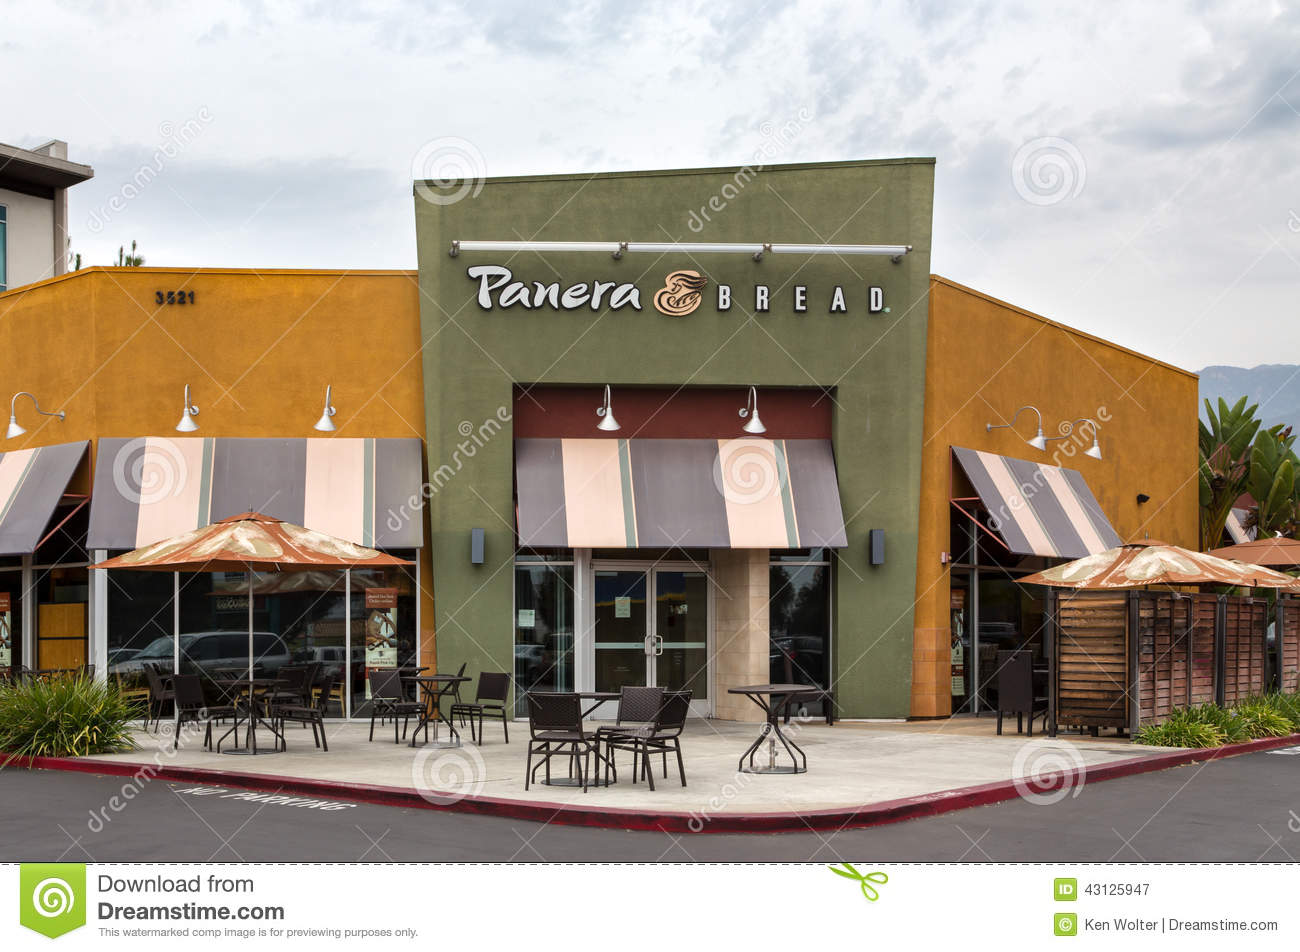 Panera bread restaurant exterior editorial photography for Restaurant exterior design pictures